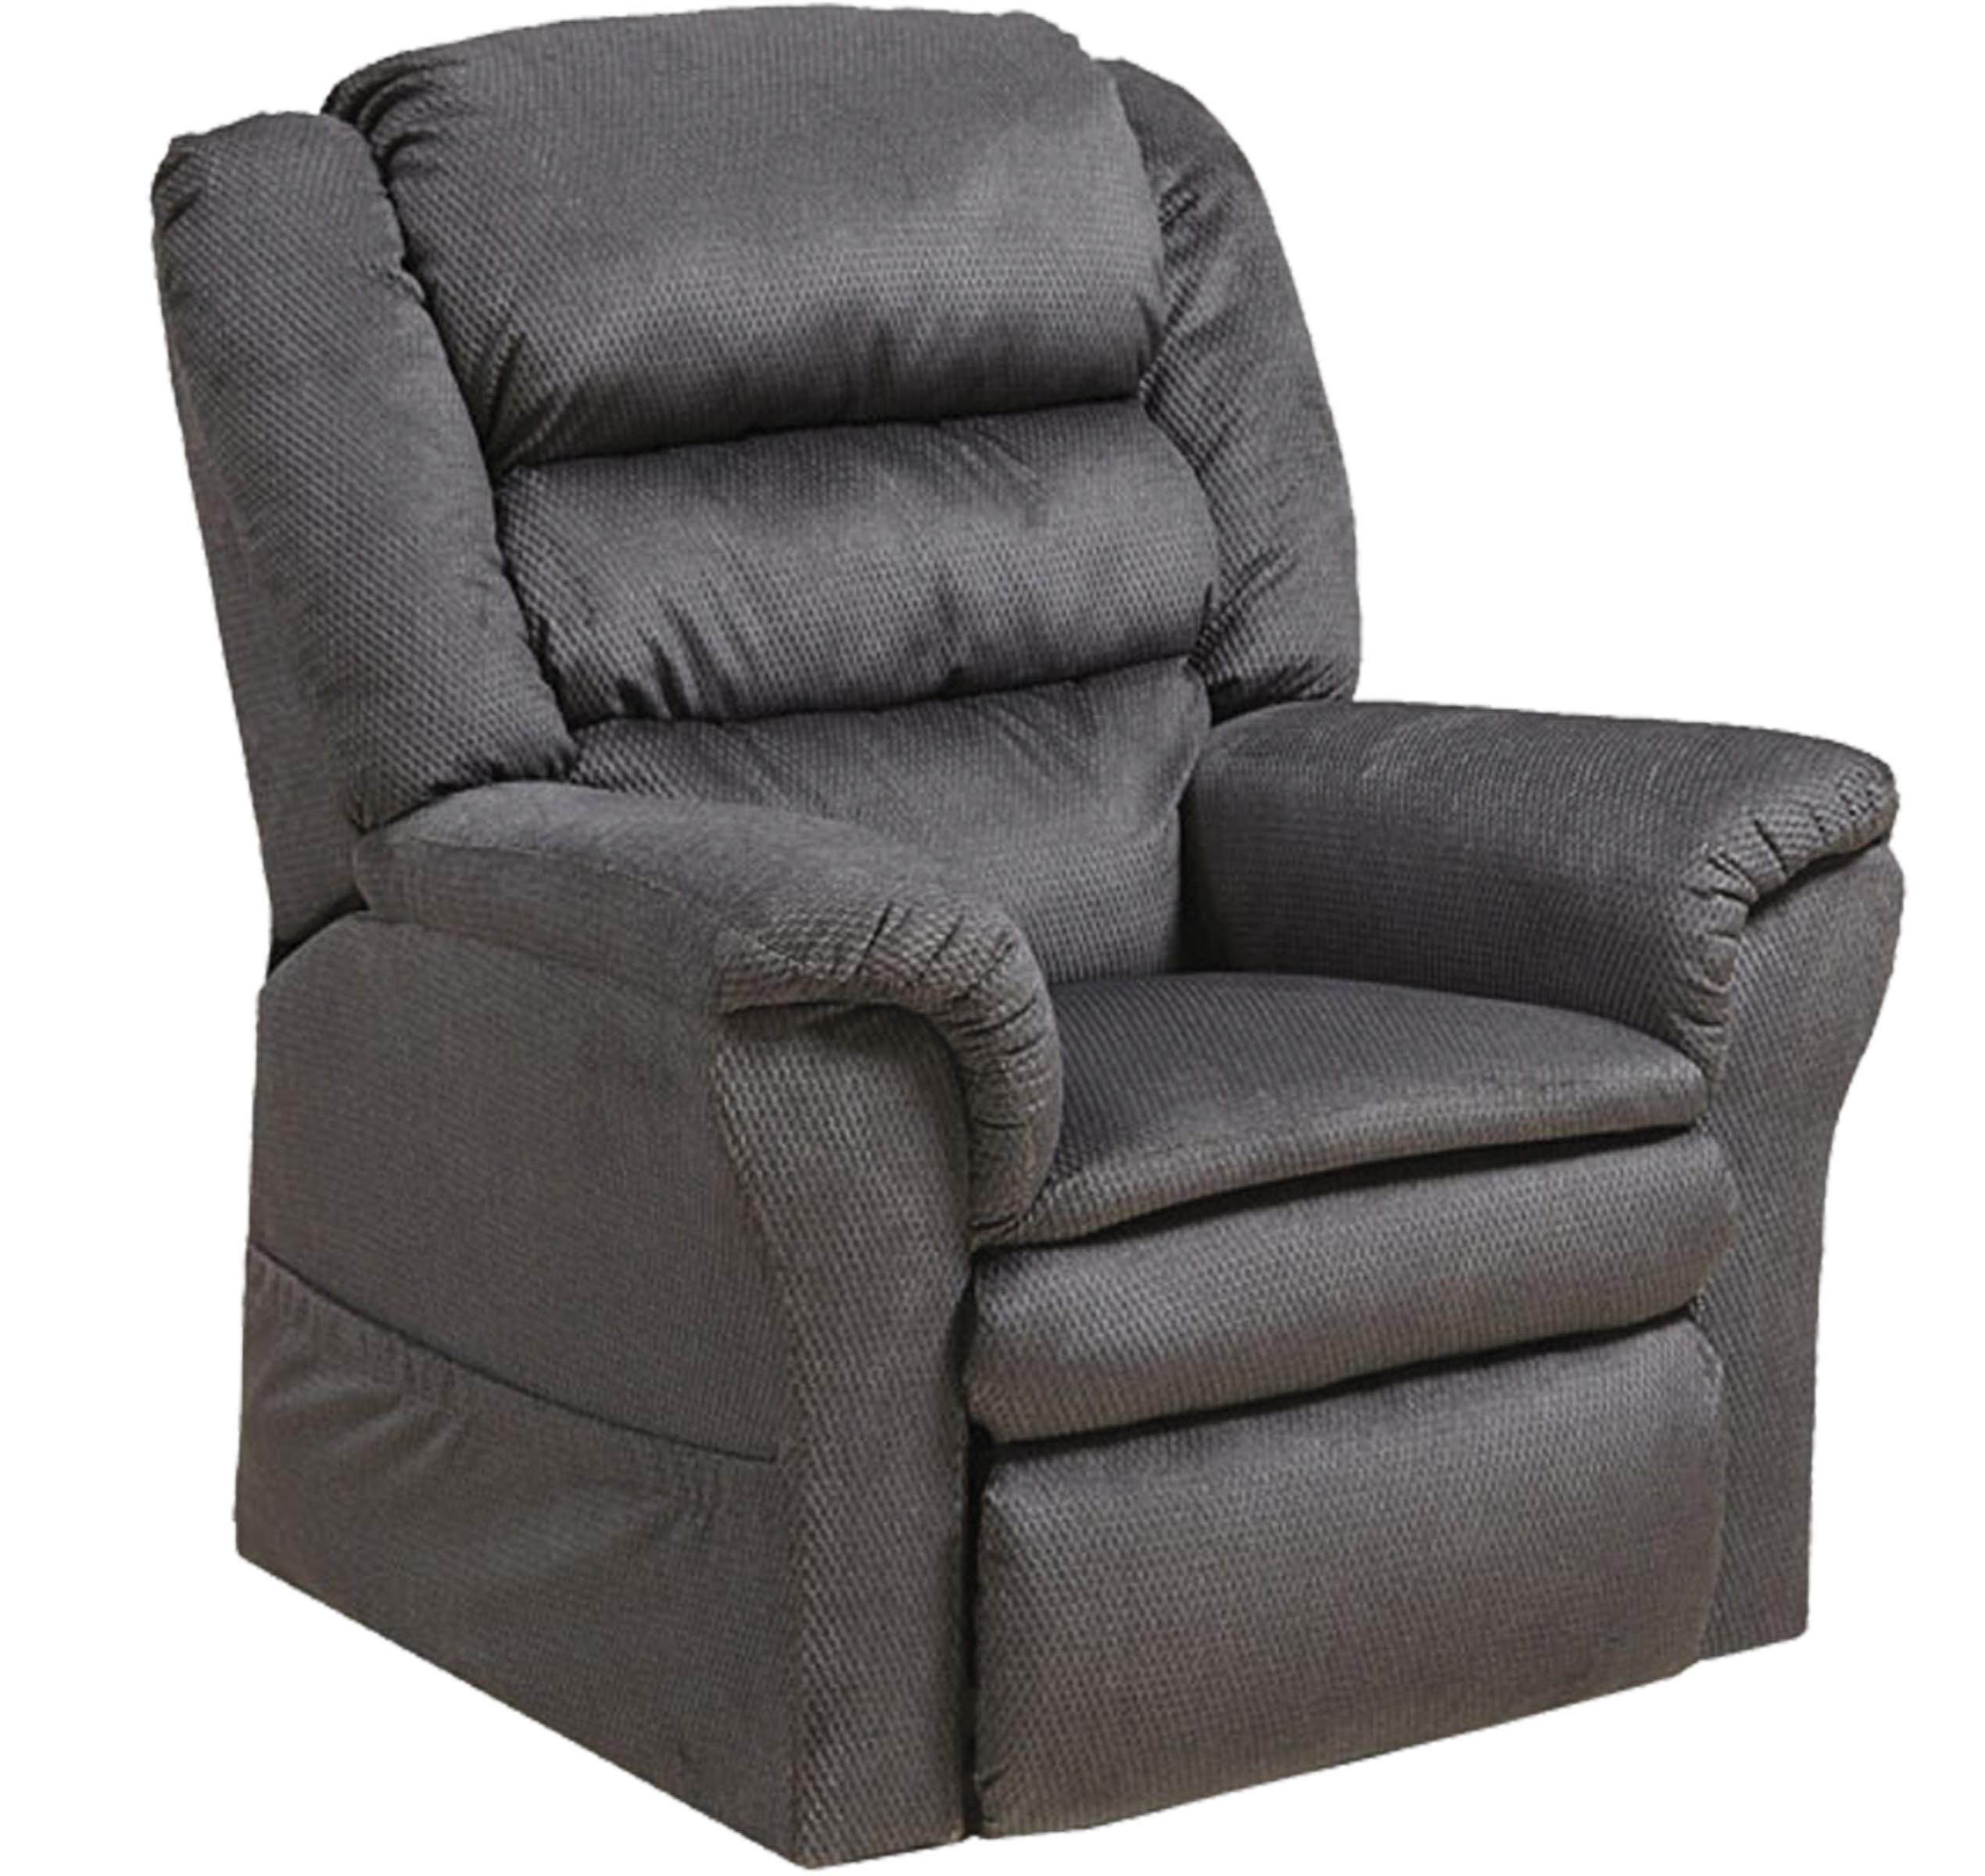 Preston Power Lift Recliner with Pillowtop Seat by Catnapper at Lapeer Furniture & Mattress Center